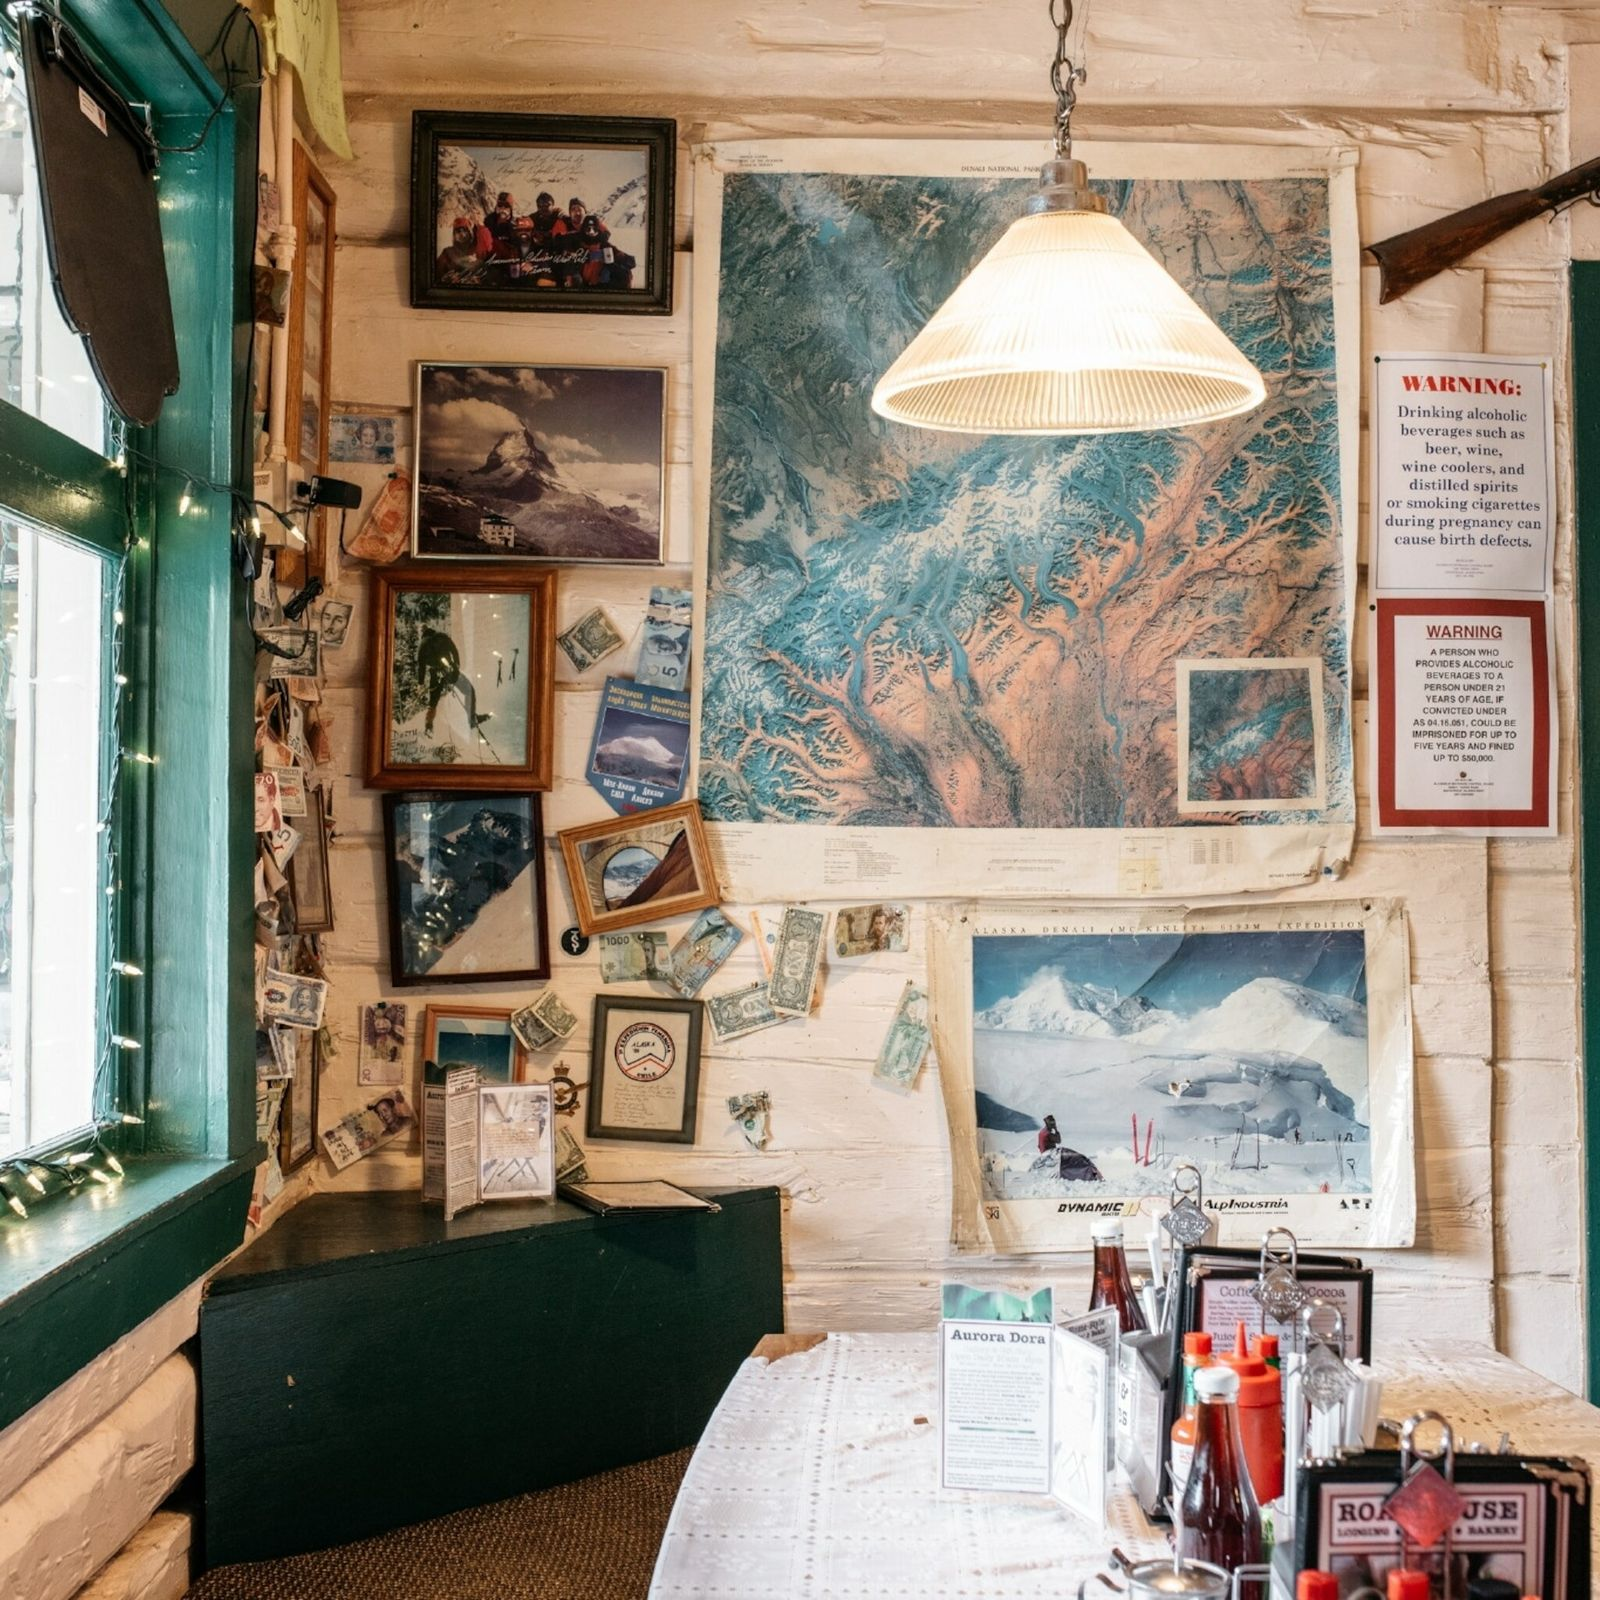 Inside the dining area of The Talkeetna Roadhouse. The open doorway leads to the cafe section ...